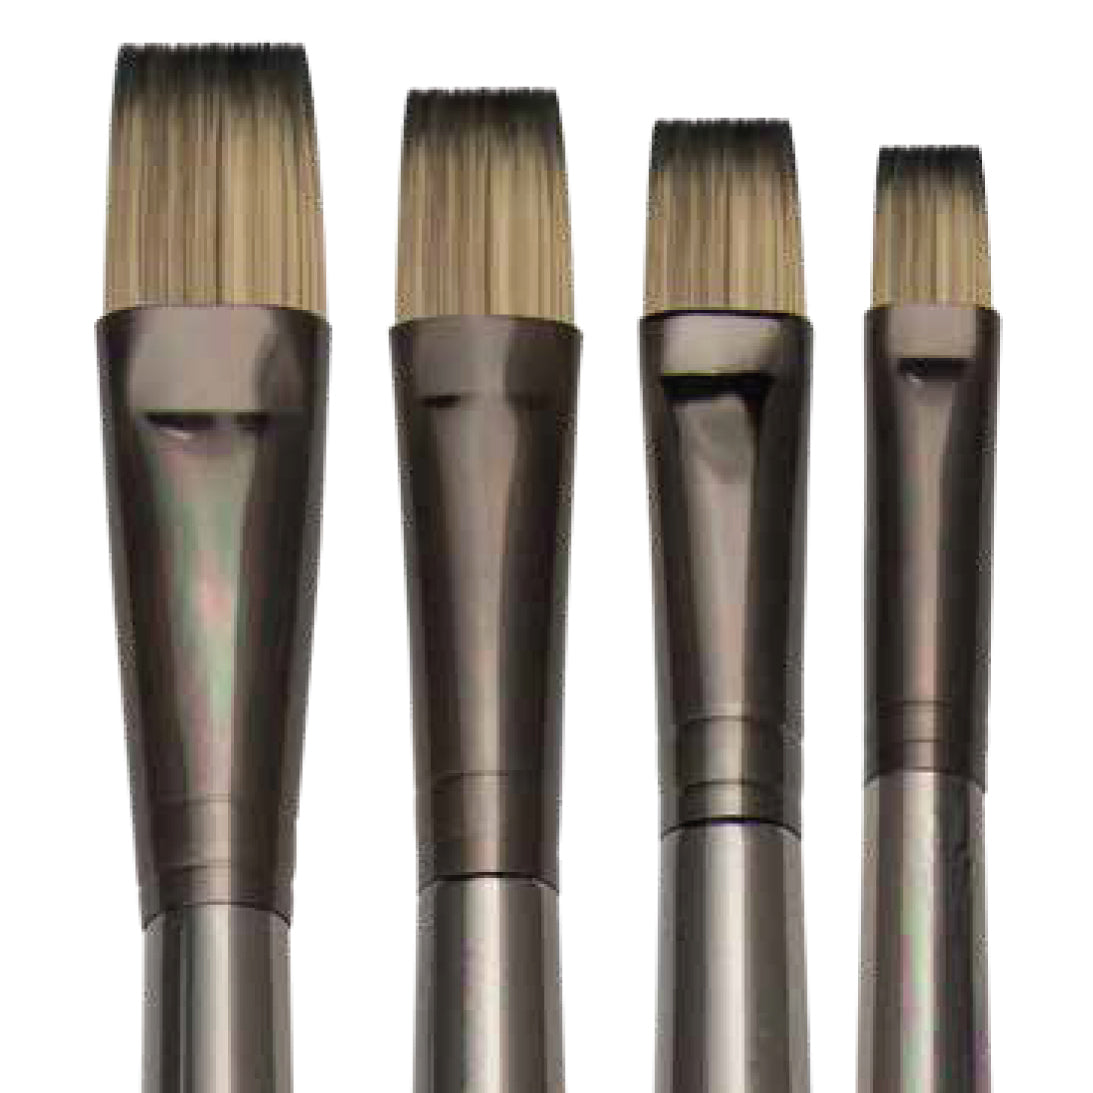 The Royal Langnickel Zen™ Series 53 Flat Ferrule is available in 7 sizes and perfect for Oil and Acrylic Painting.